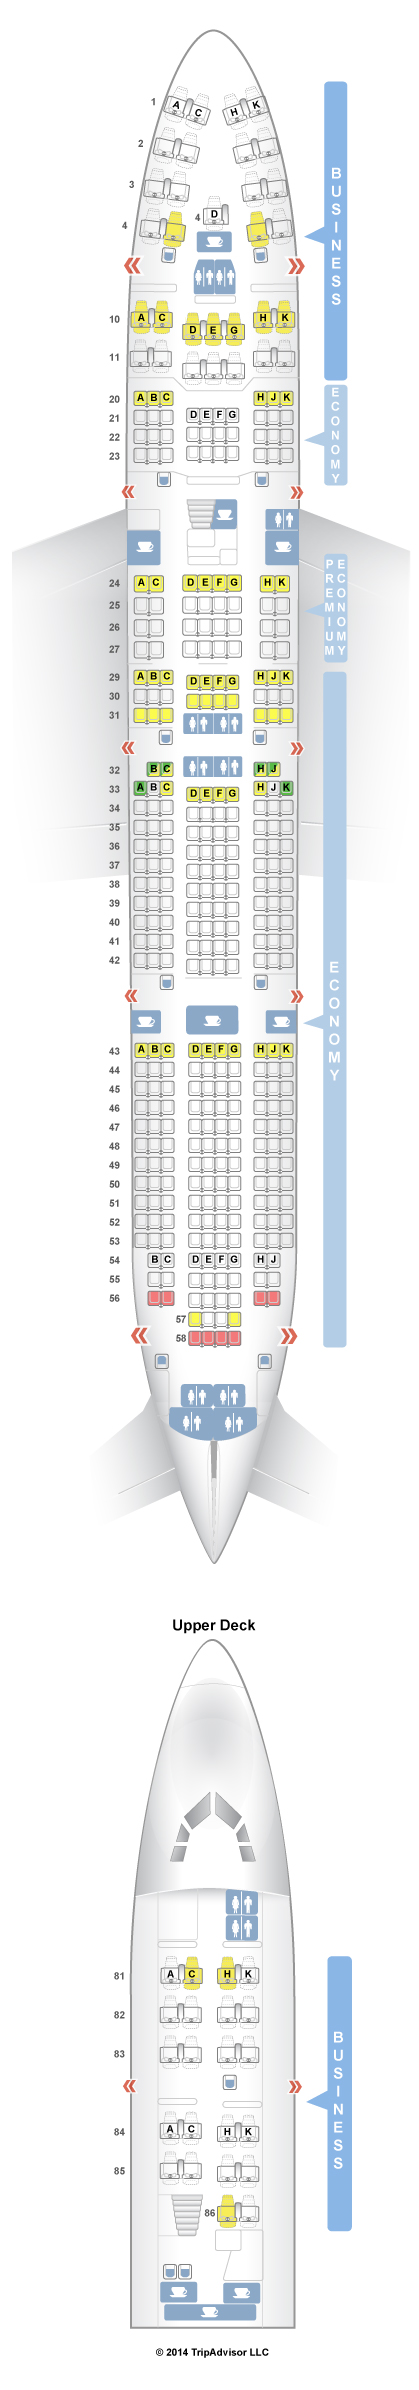 Boeing Seat Map on